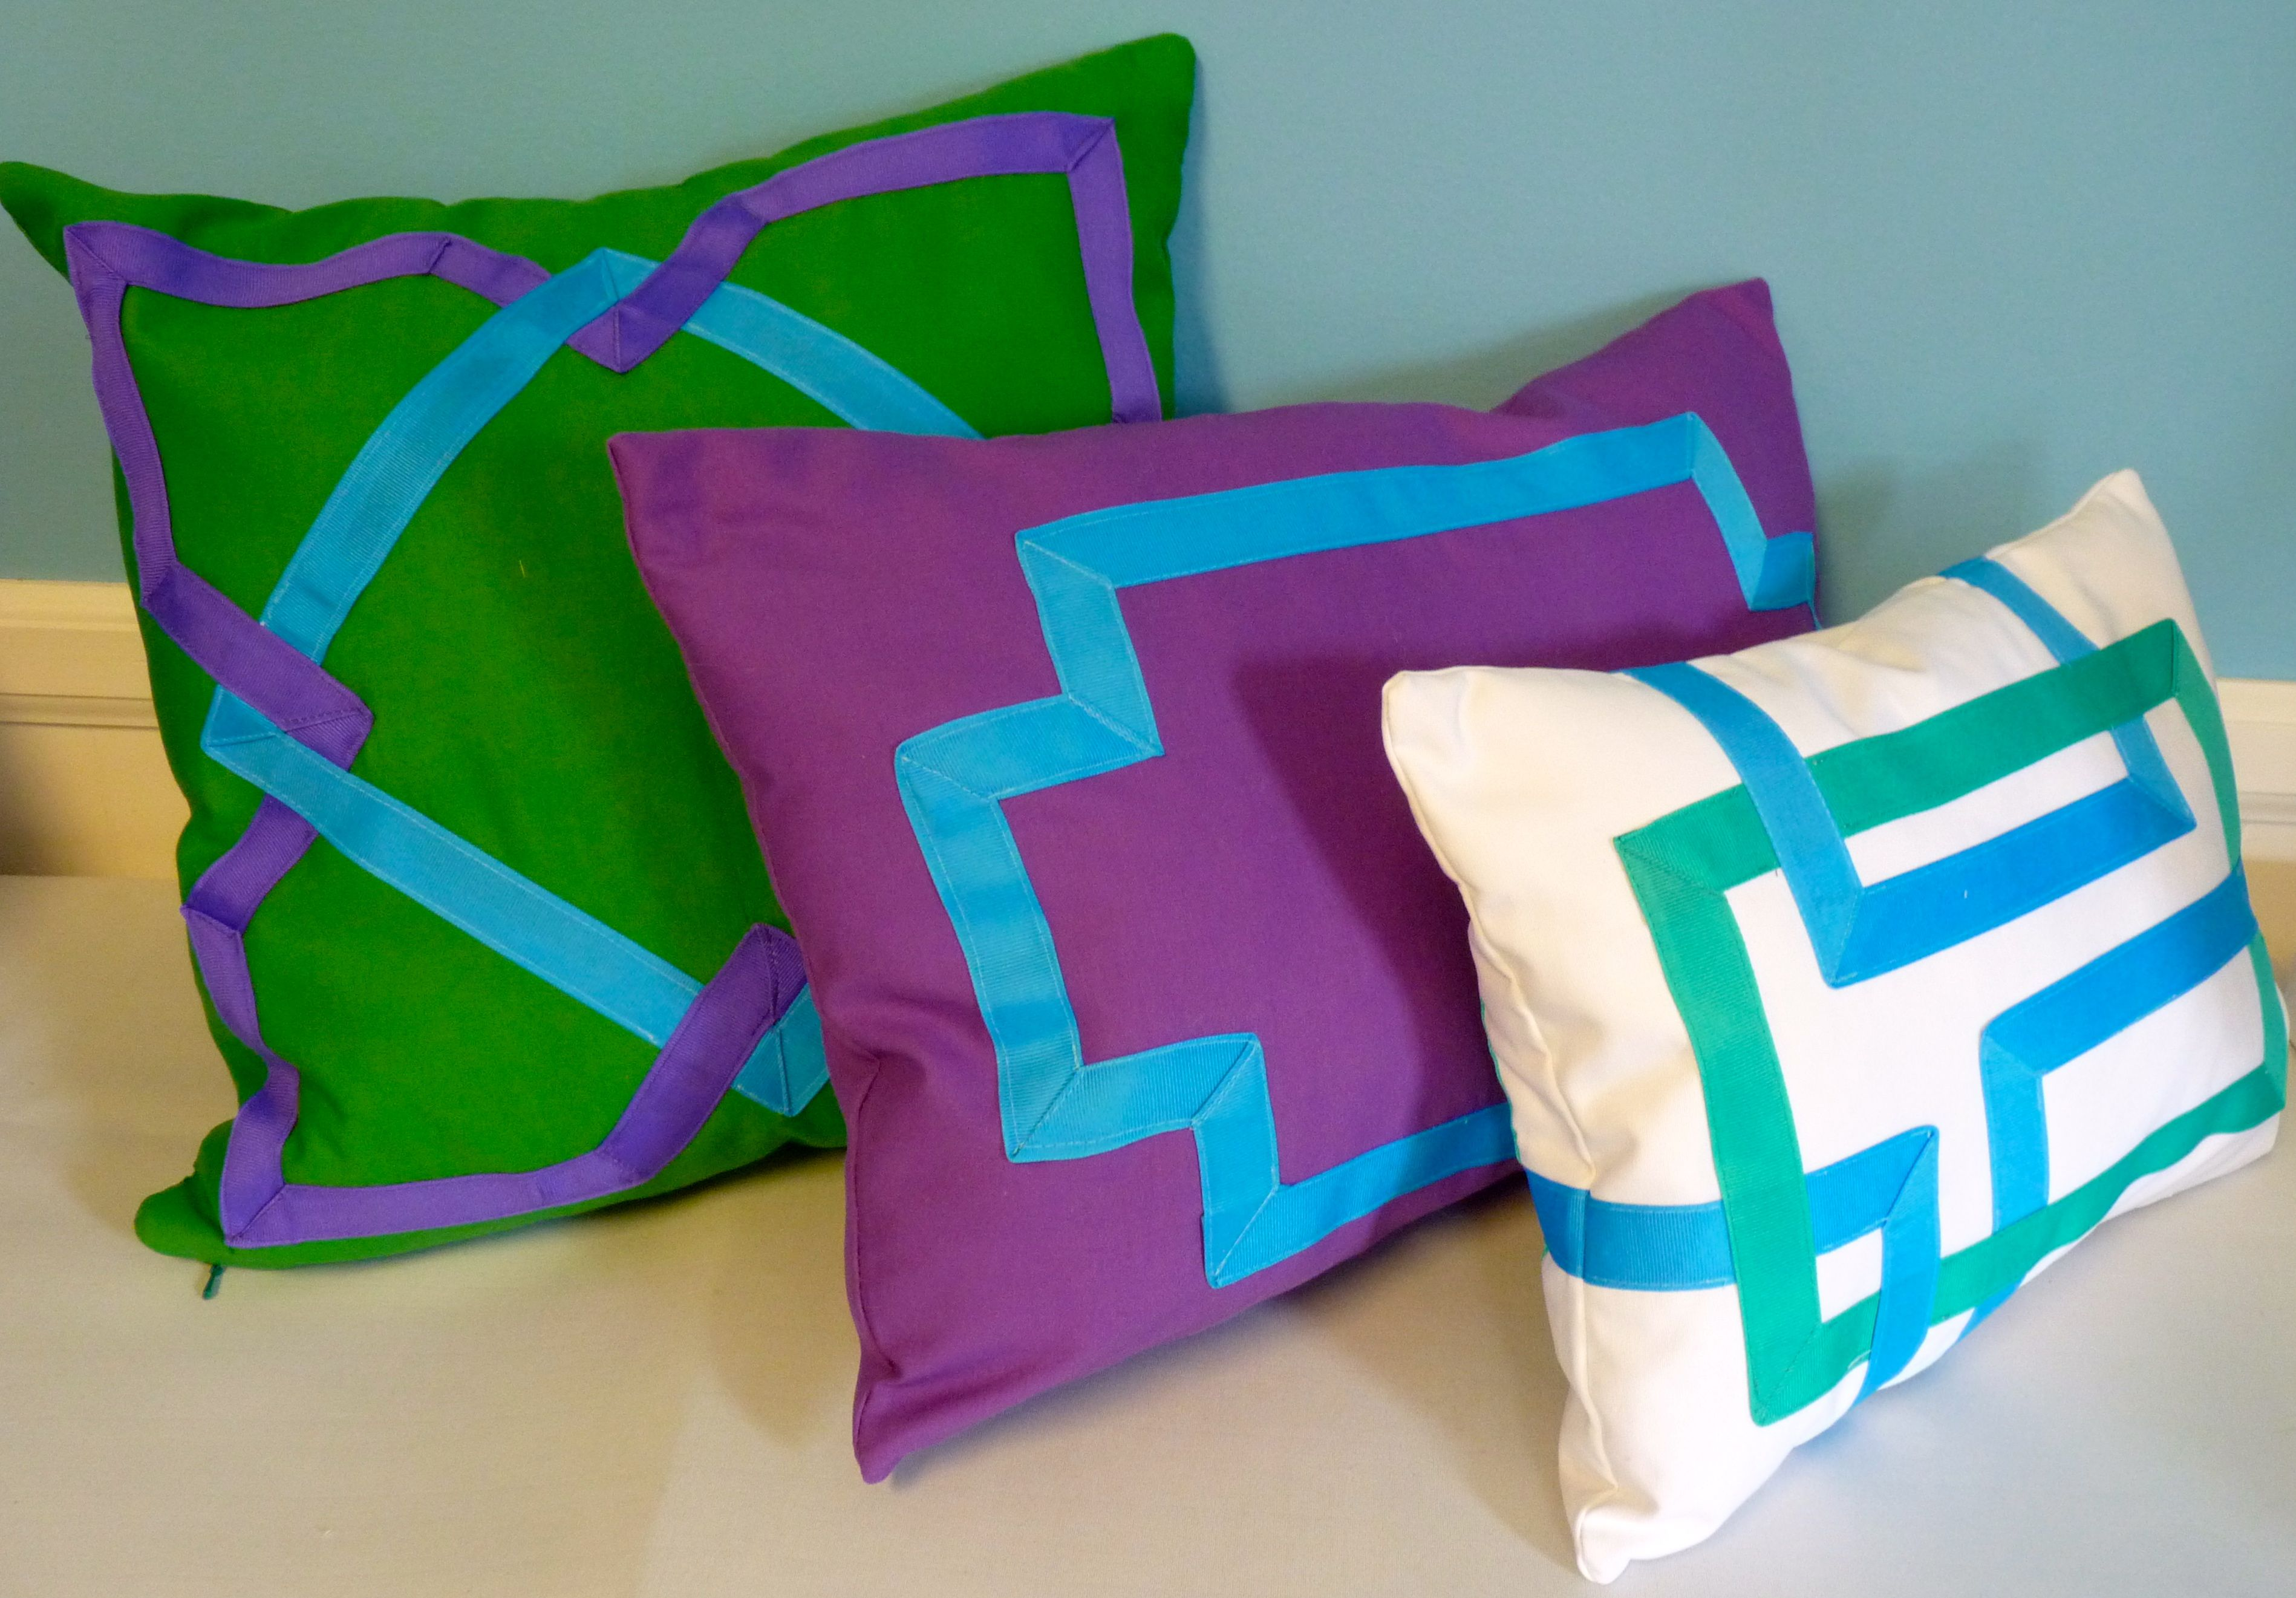 Ribbon design pillows by susan woodcock homedecgal pillows